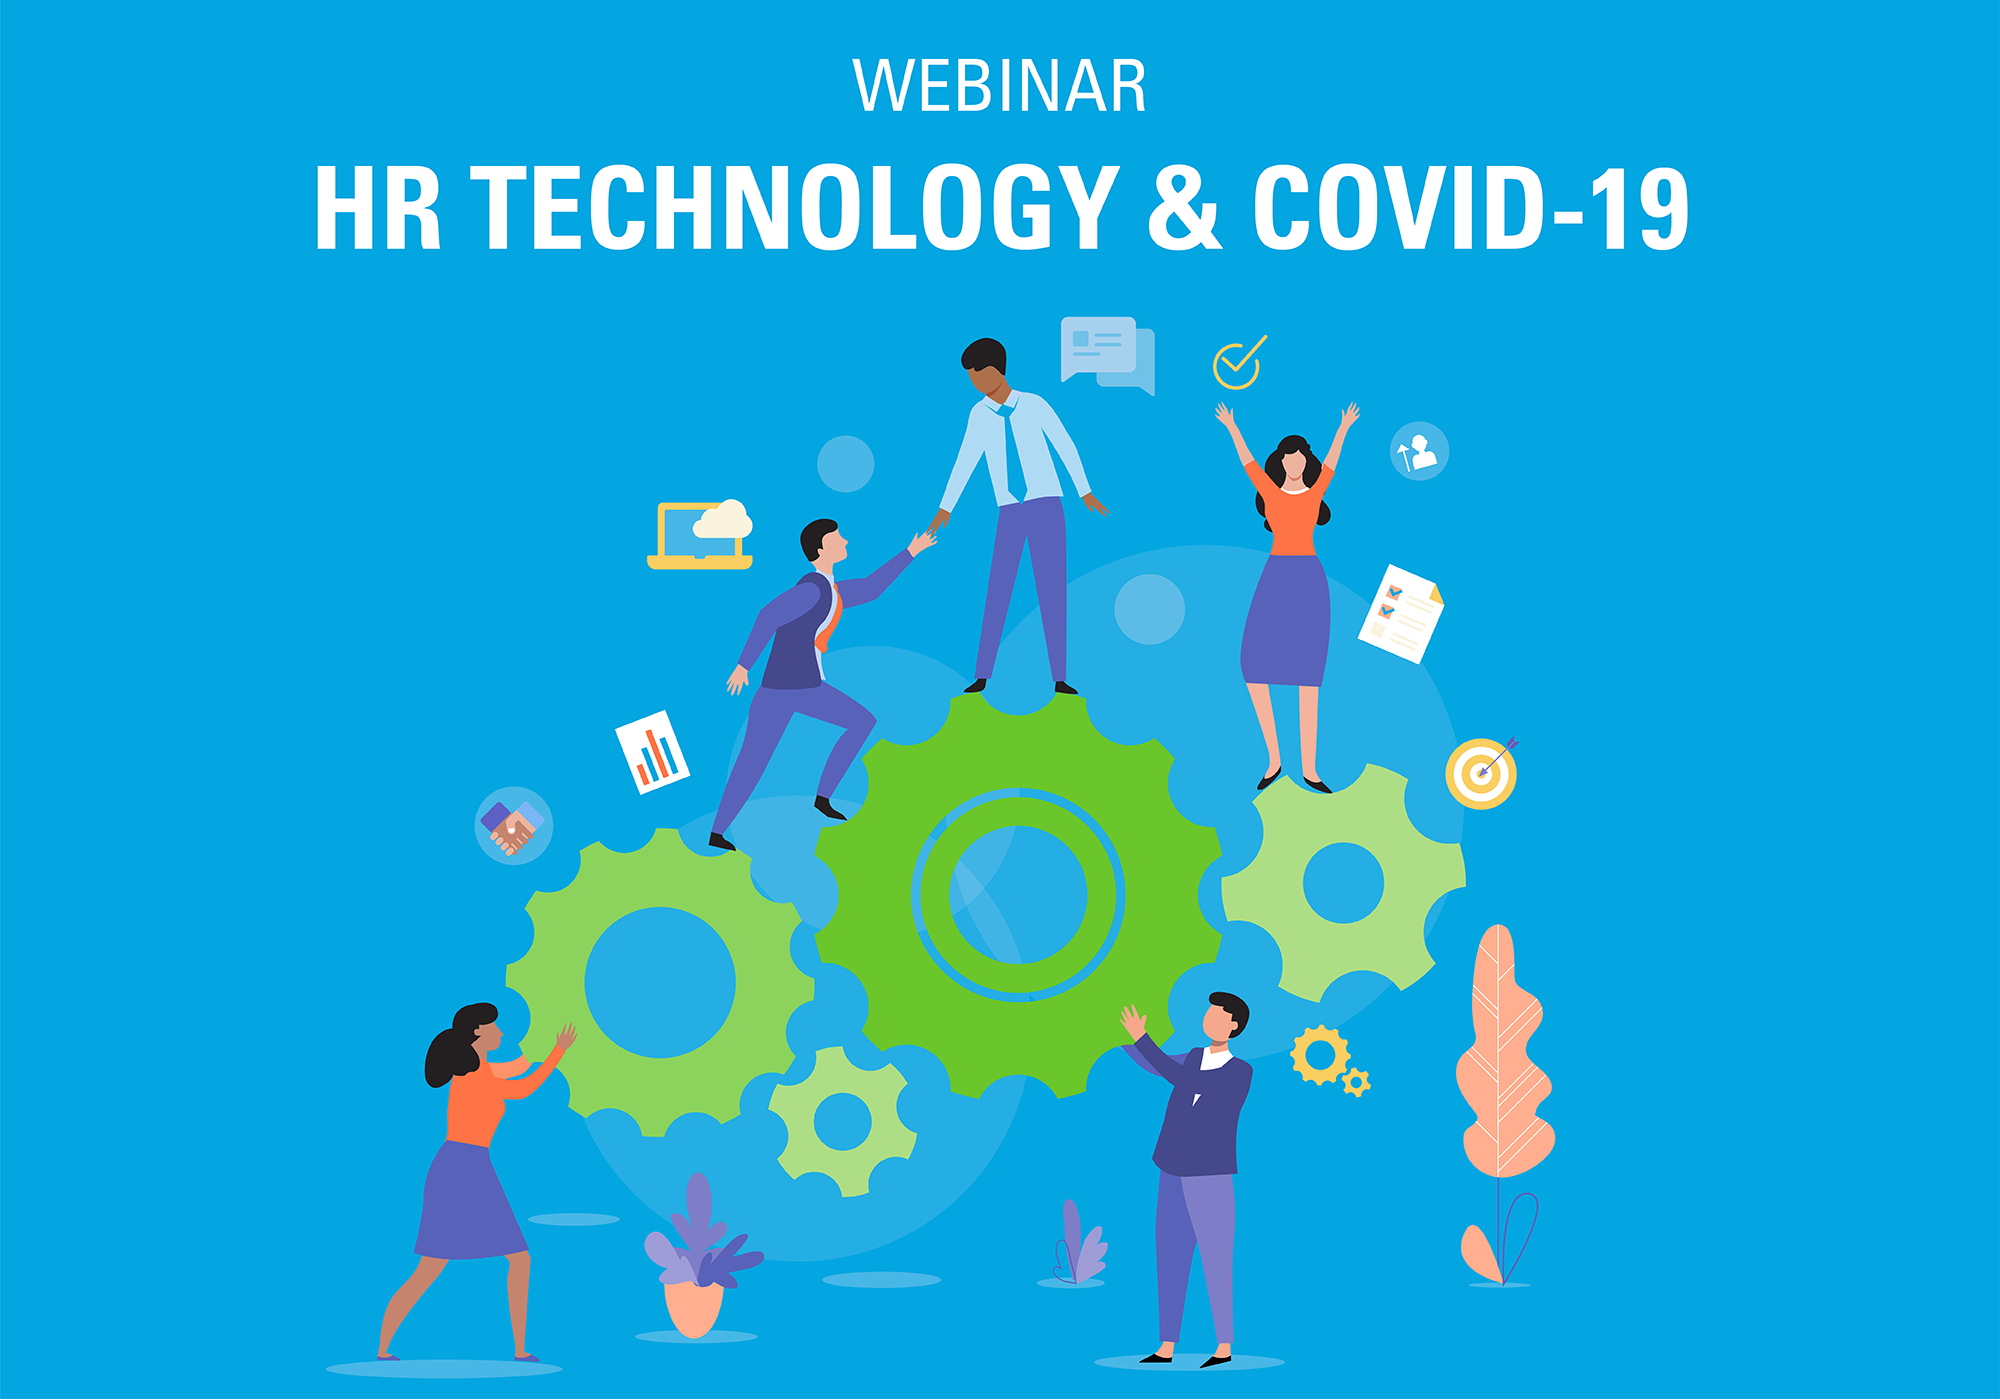 HR Technology & COVID-19 webinar graphic